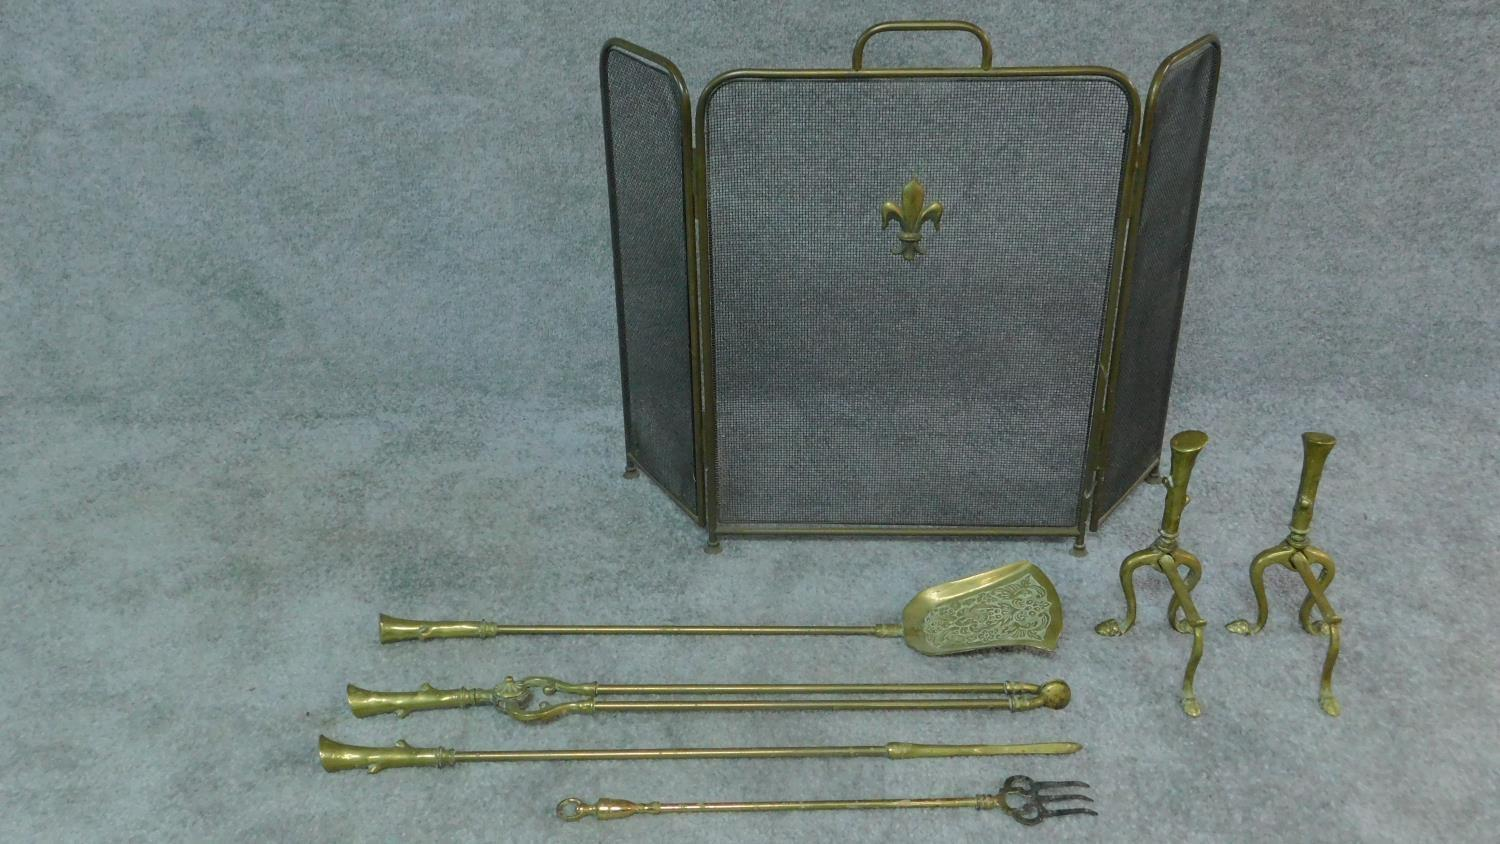 A set of 19th century brass fire implements and the matching andirons and a three section fireguard.